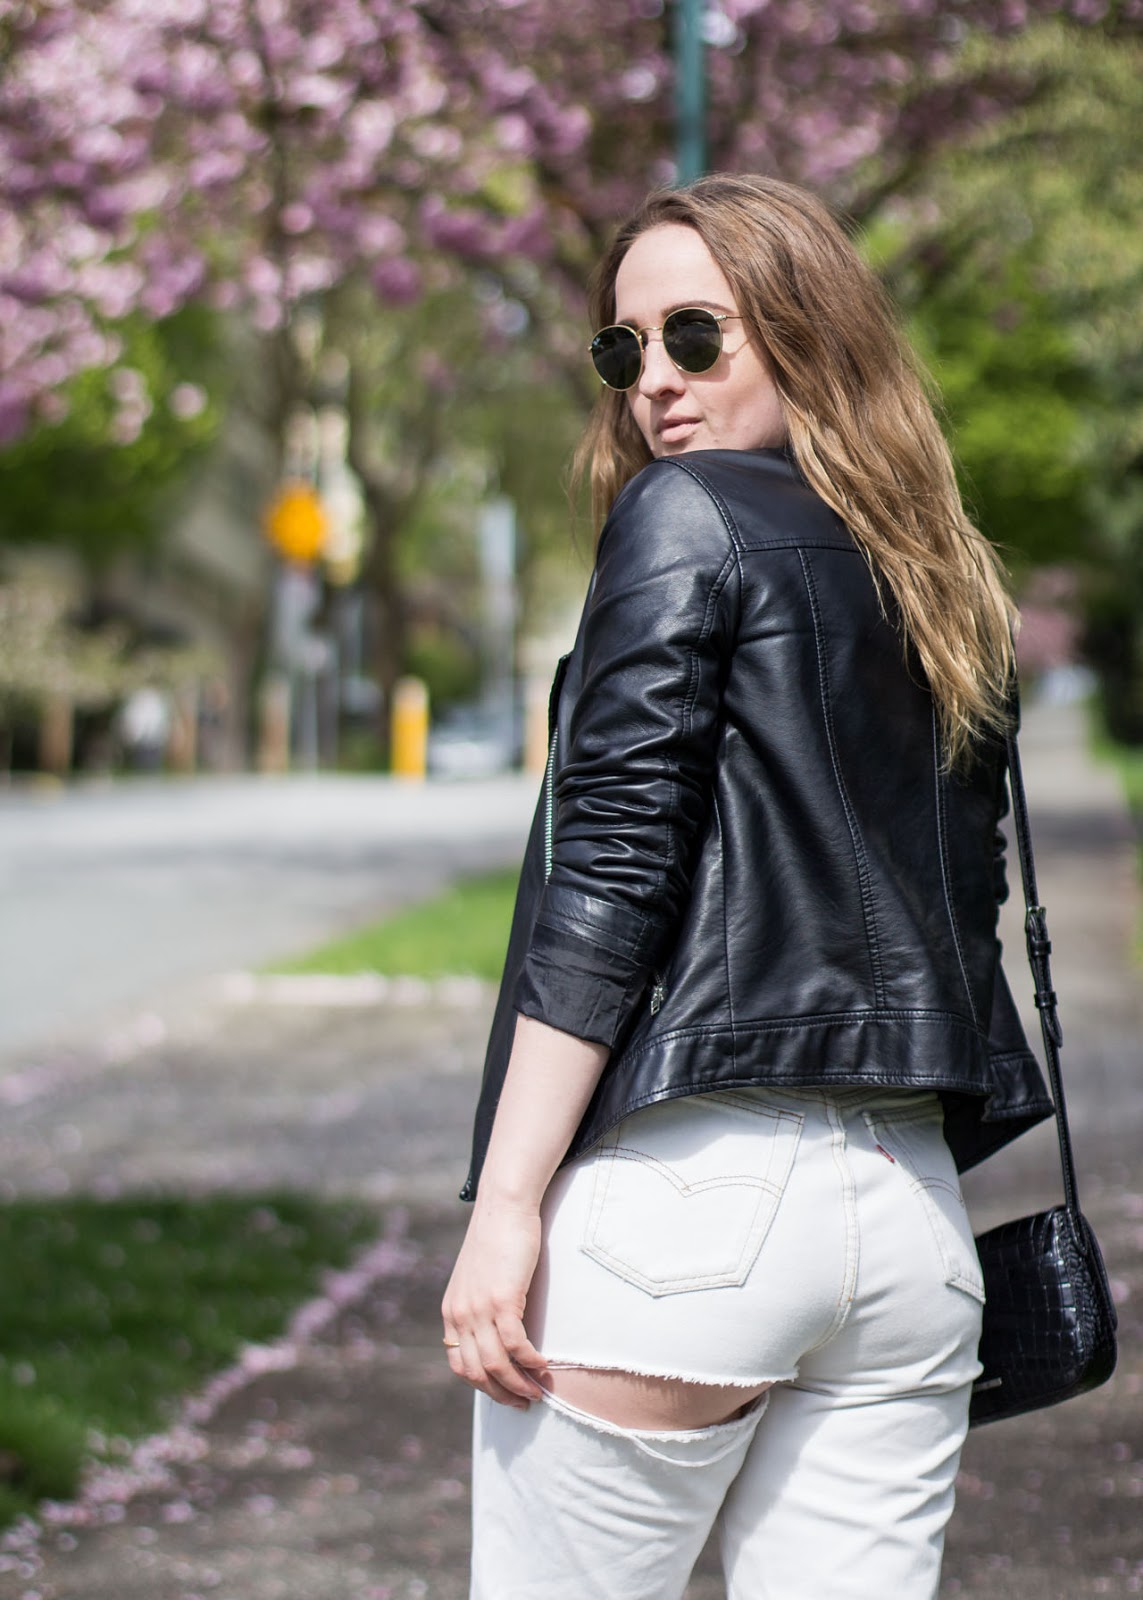 Vancouver Fashion Blog - Personal style - Spring / Summer outfit - vintage Levi's